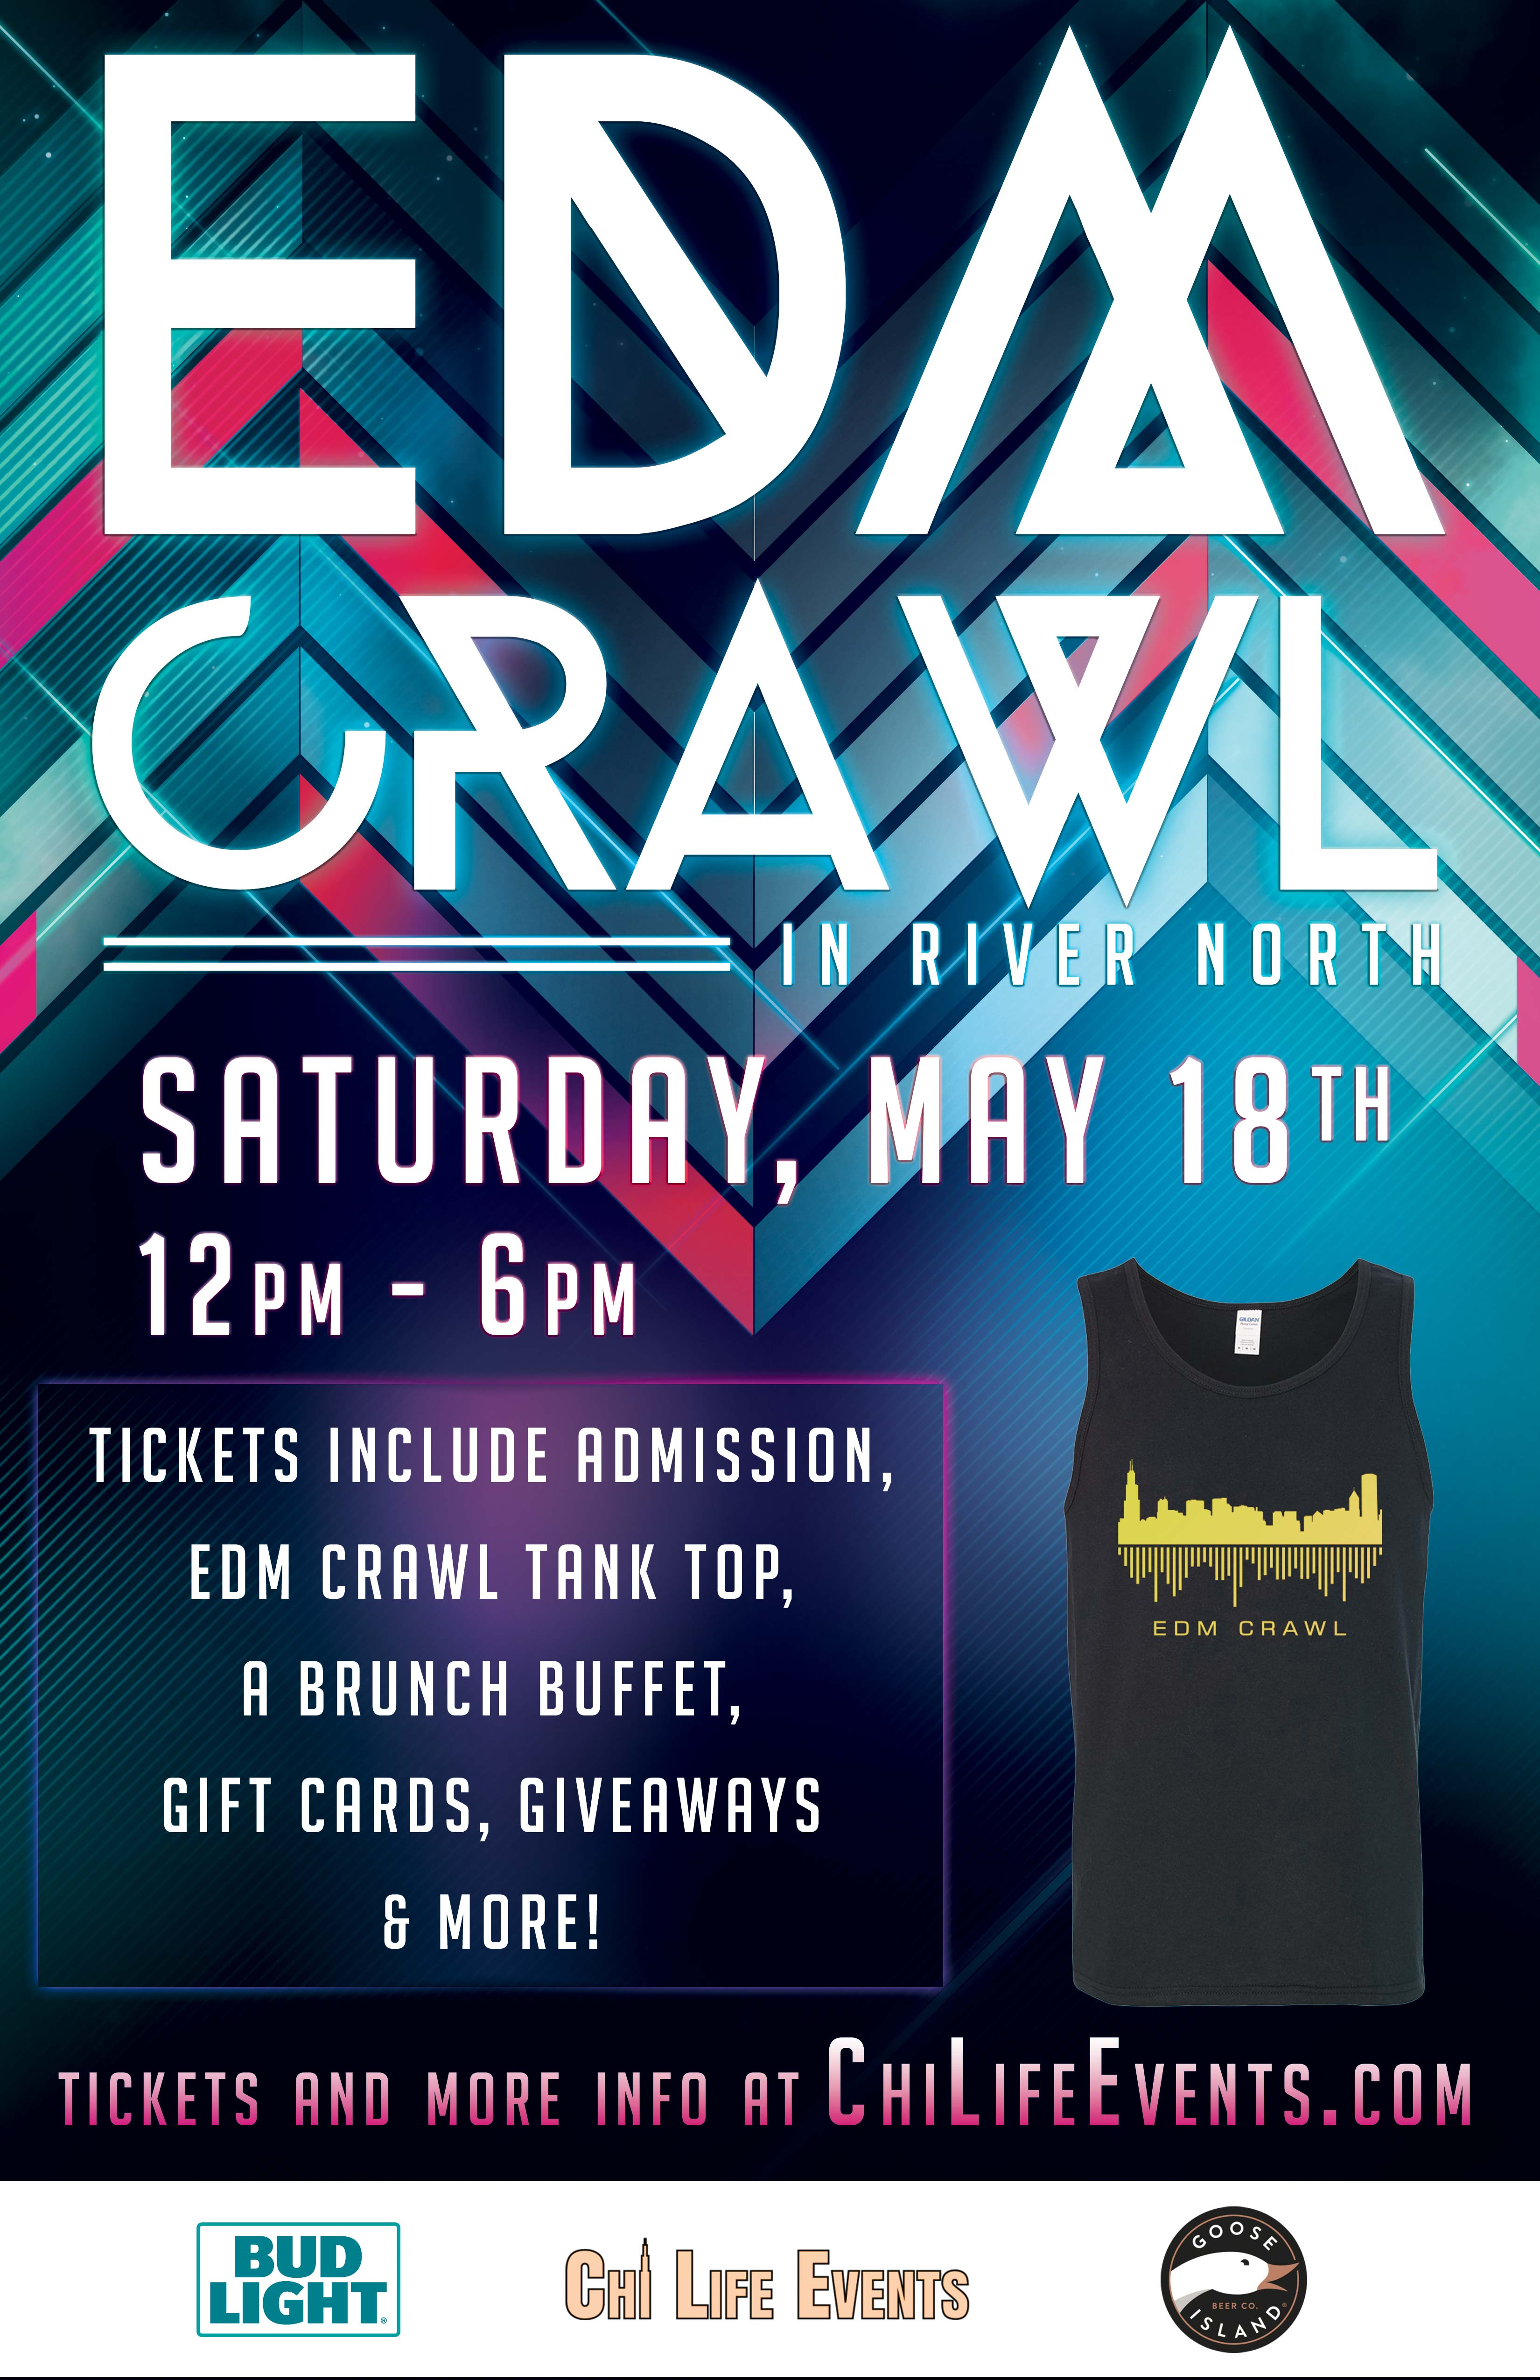 The EDM Crawl Party - Tickets include Admission, an Official EDM Crawl Tank Top, a Brunch Buffet, Gift Cards to use on the crawl, Giveaways & More!